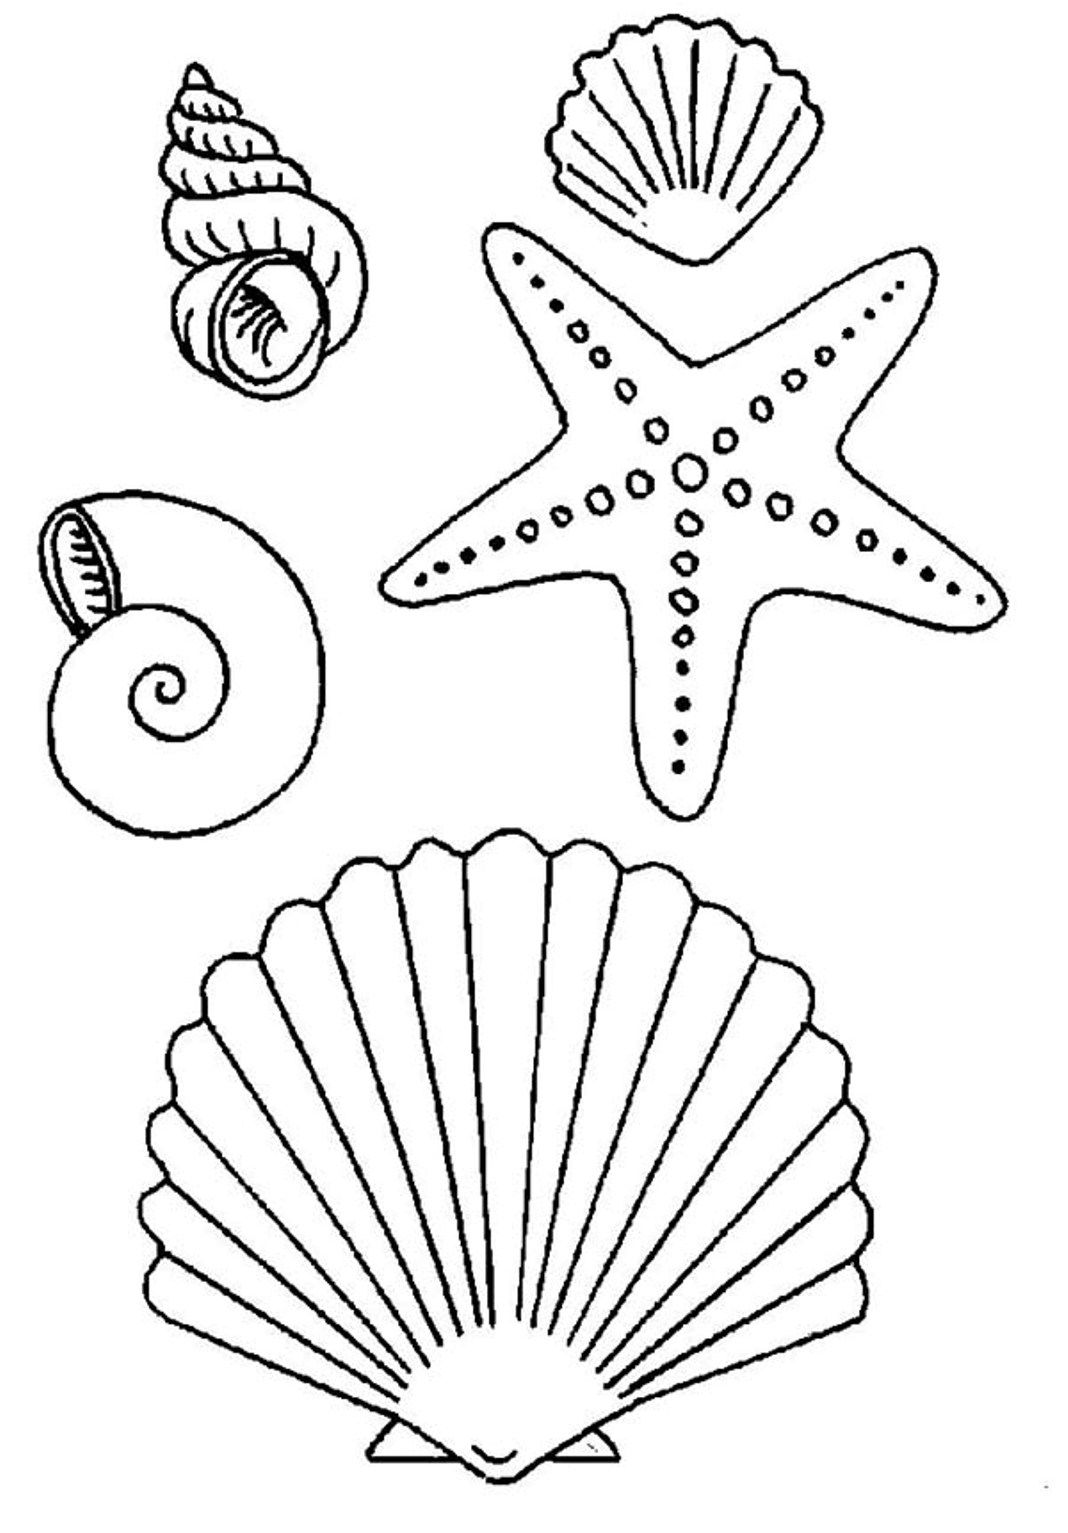 images for u003e simple seashell drawings tattoos i want pinterest